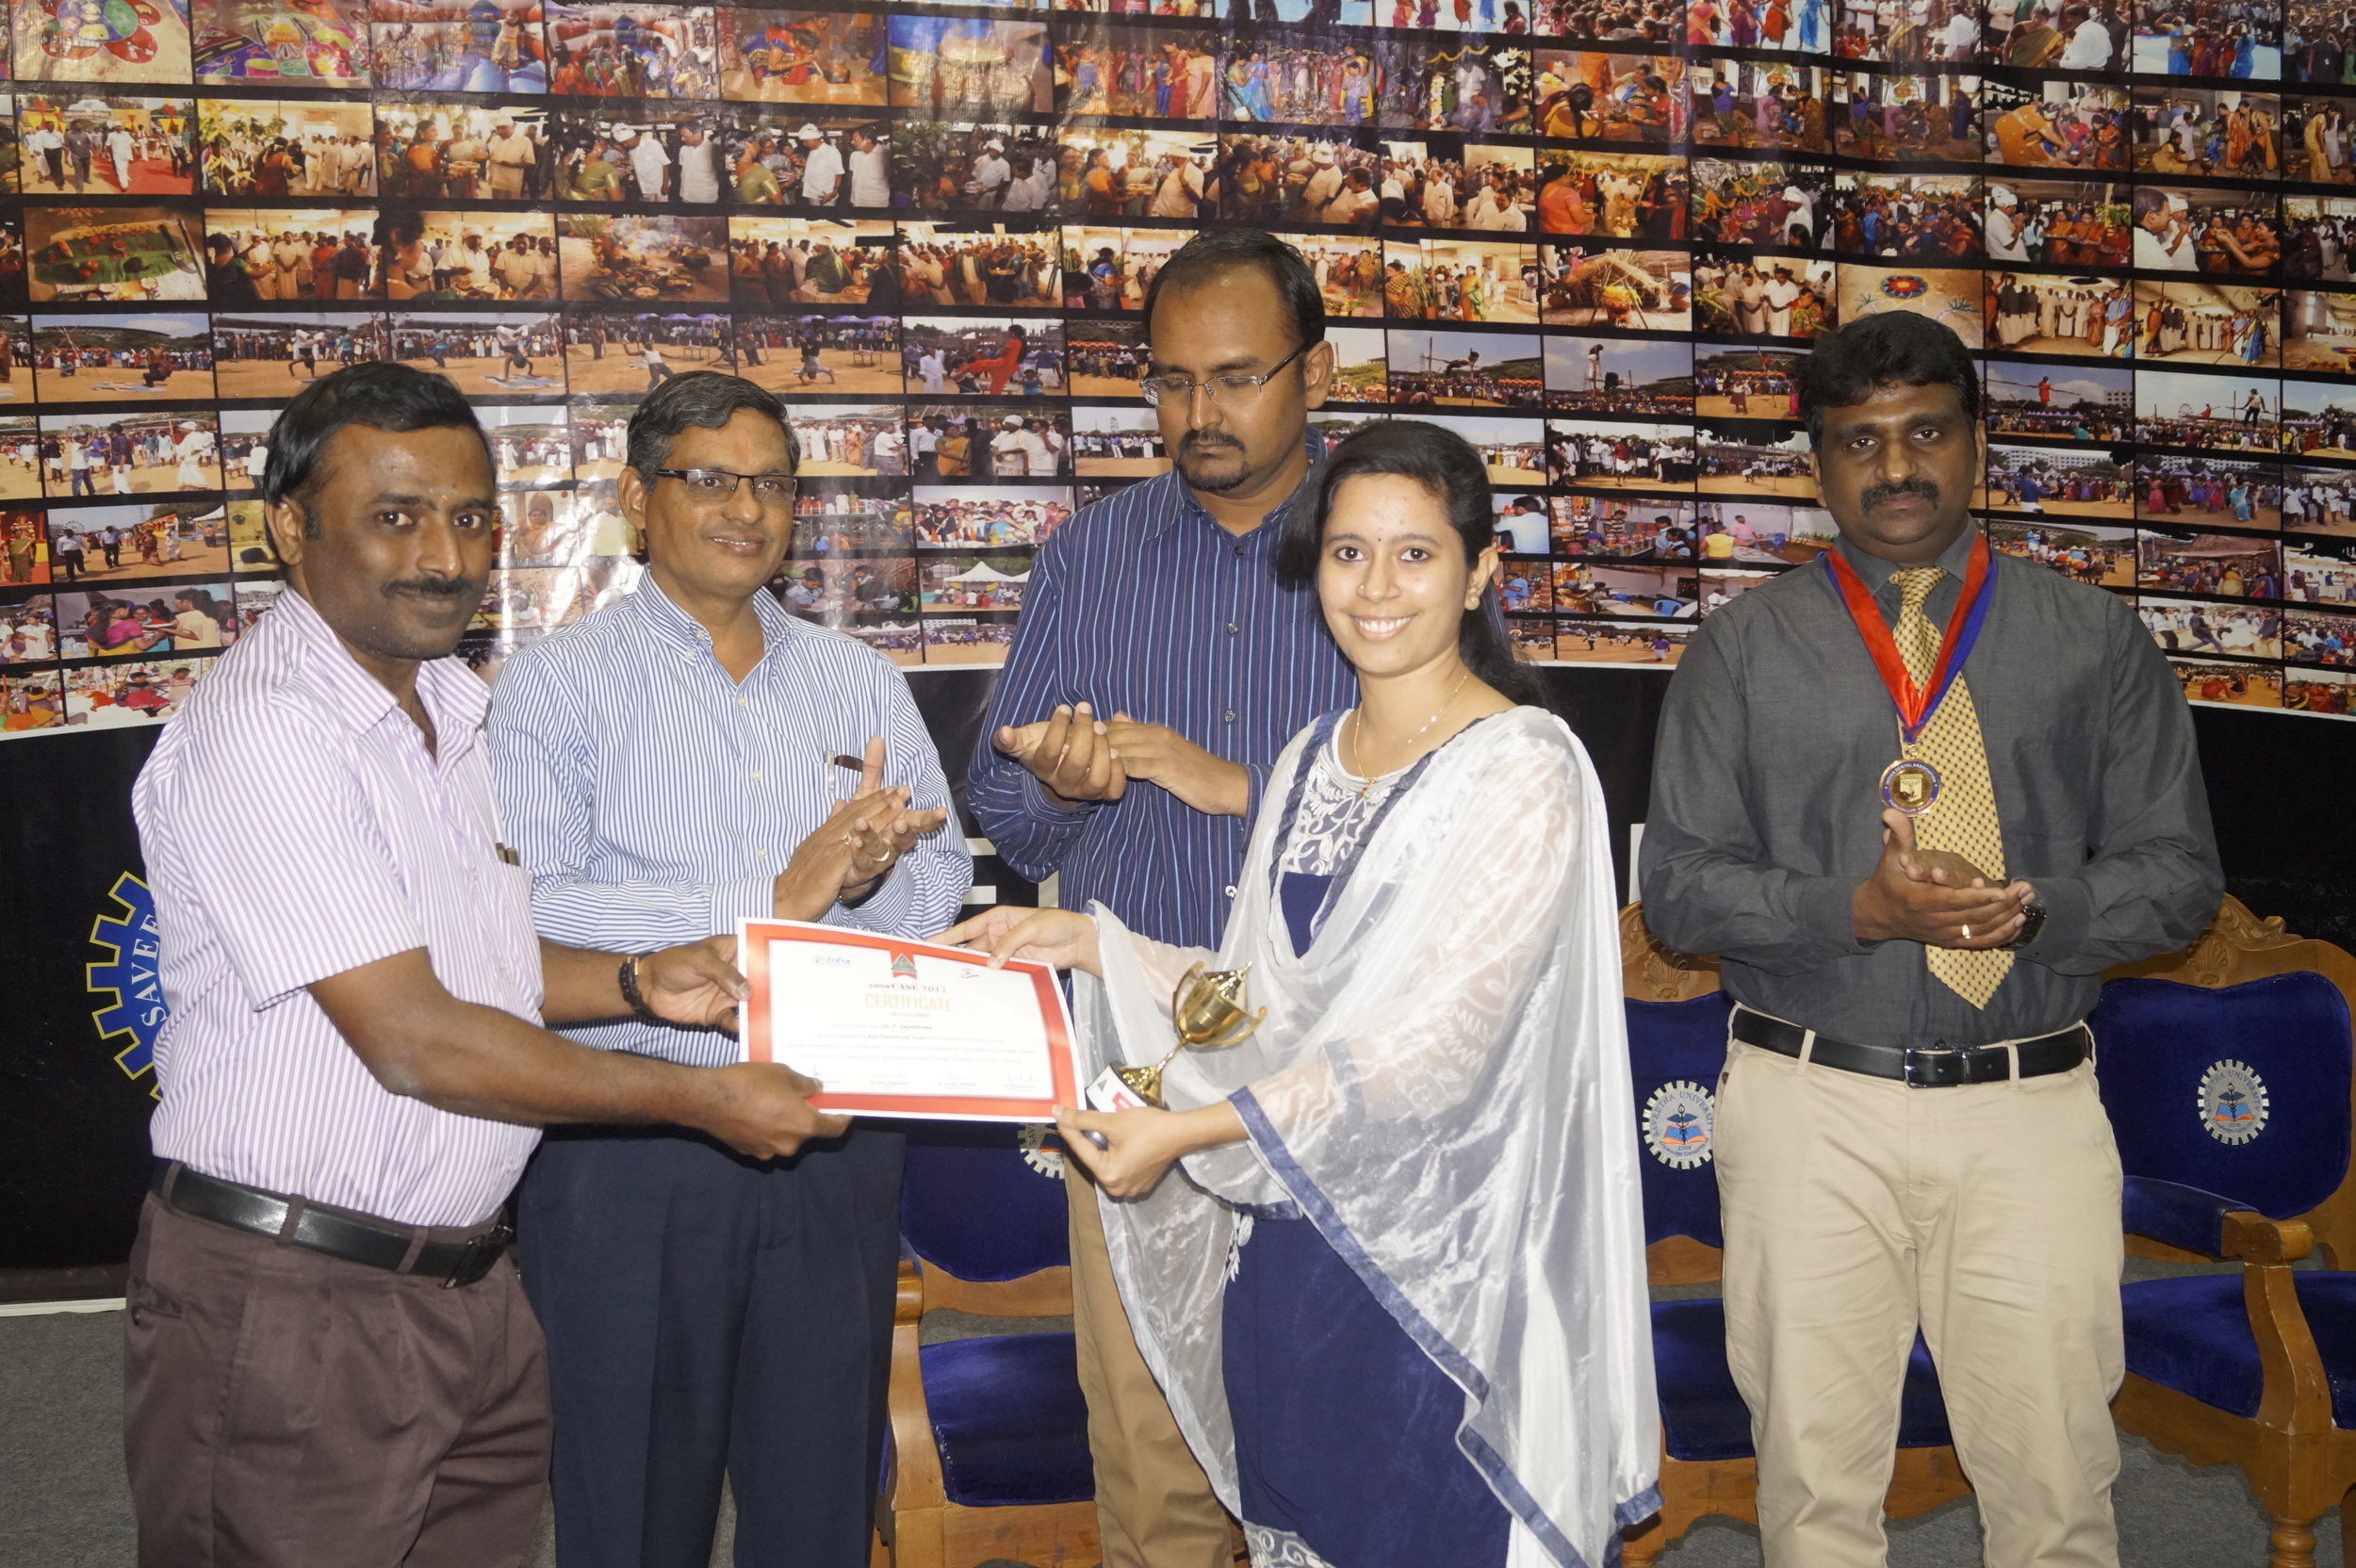 Best paper - Dr.P.Jayashri- III yr Post GraduateTitle: Seal and Heal rather than Drill and Fill